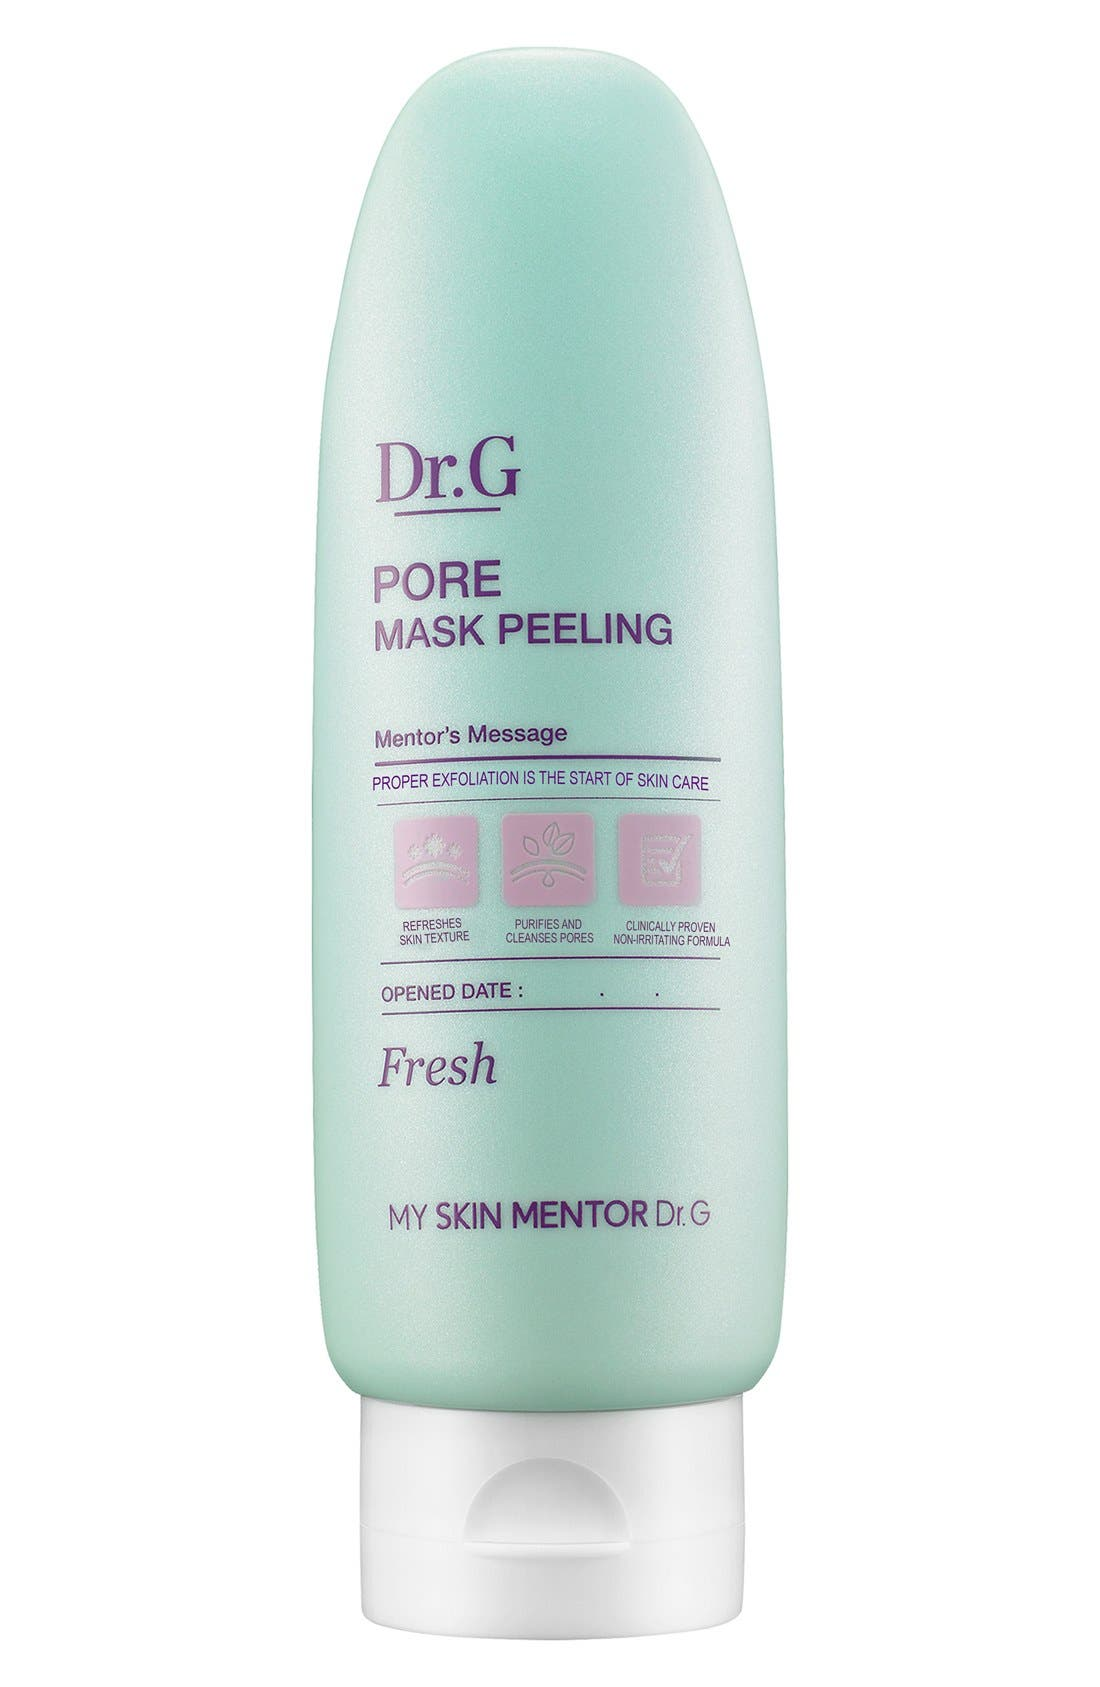 My Skin Mentor Dr. G Beauty Pore Mask